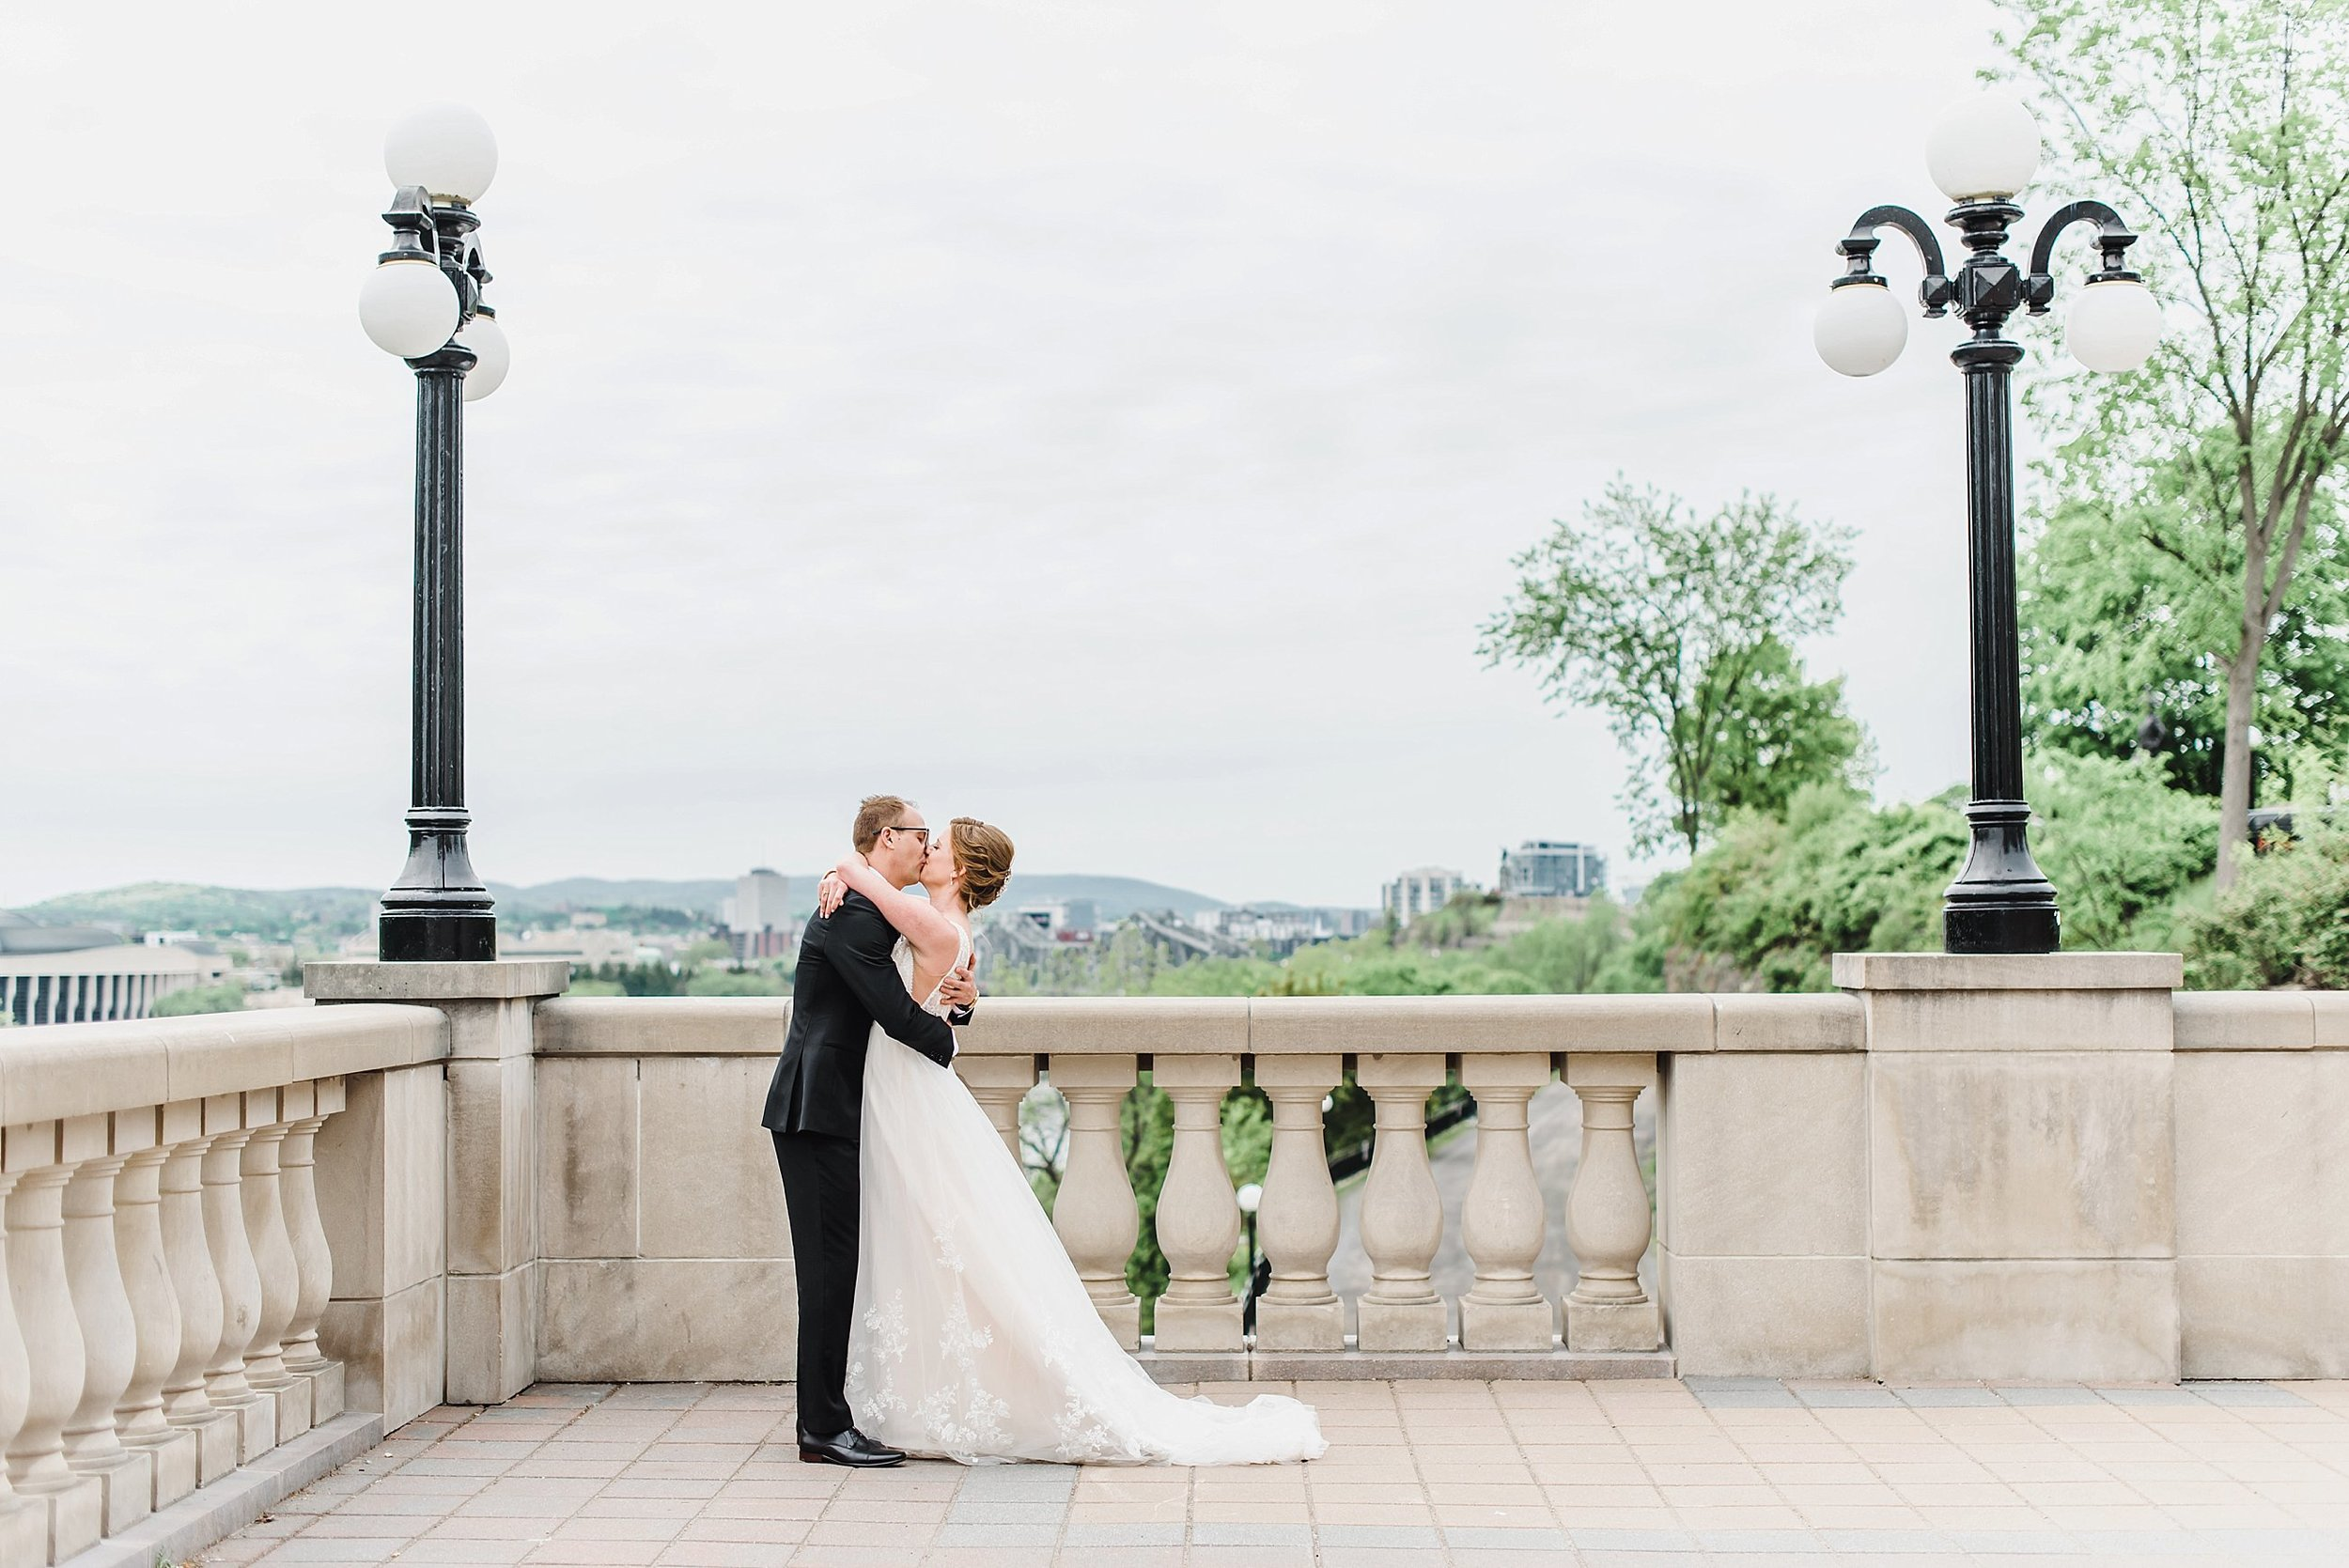 light airy indie fine art ottawa wedding photographer | Ali and Batoul Photography_0350.jpg